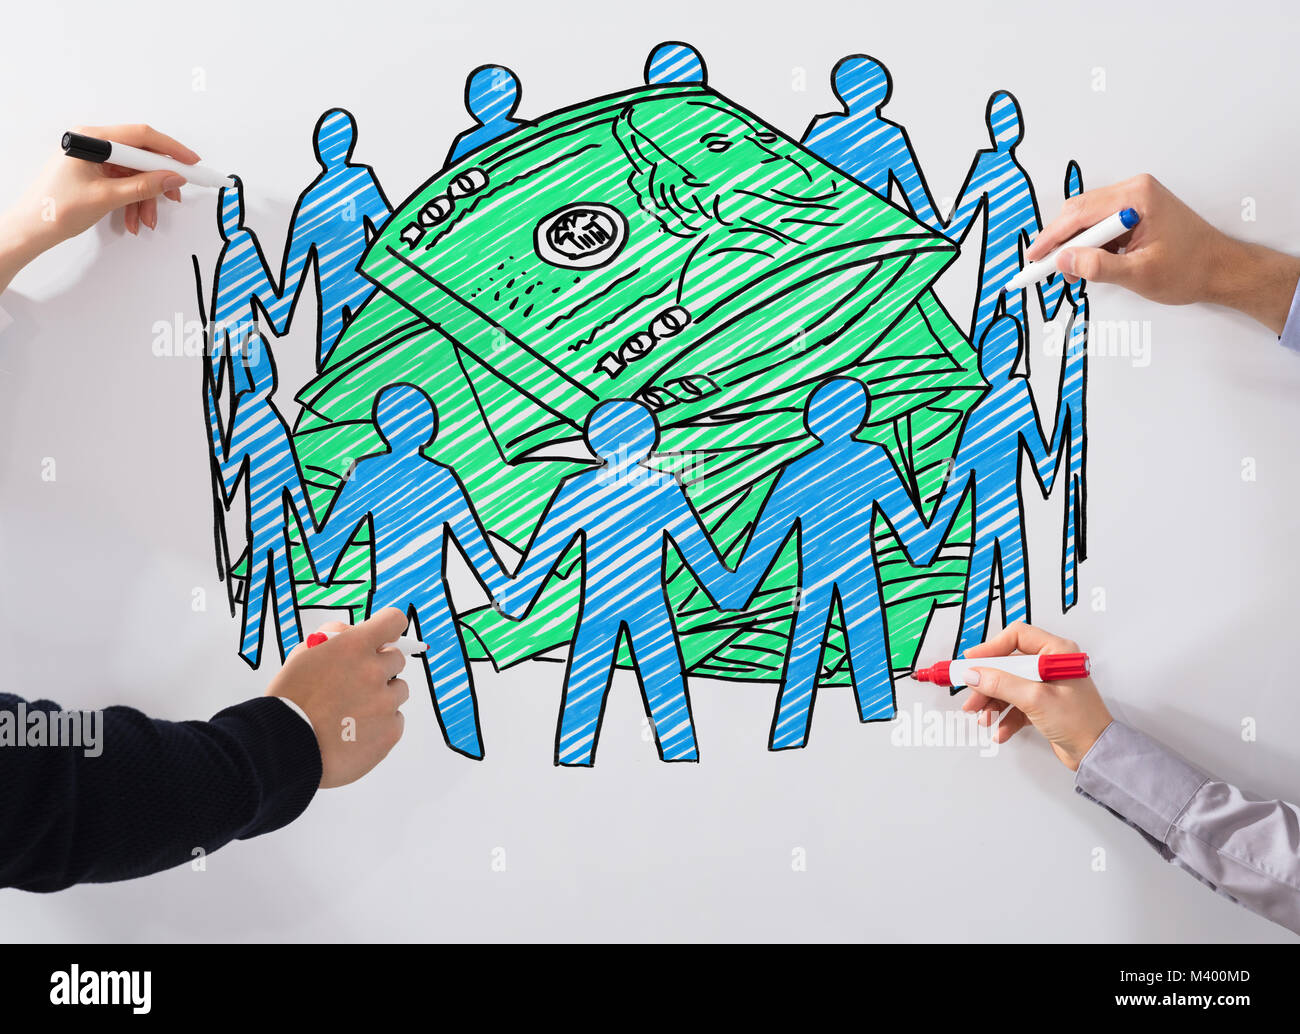 Close-up Of Business People's Hand Drawing Crowd Funding Chart With Marker On Whiteboard - Stock Image